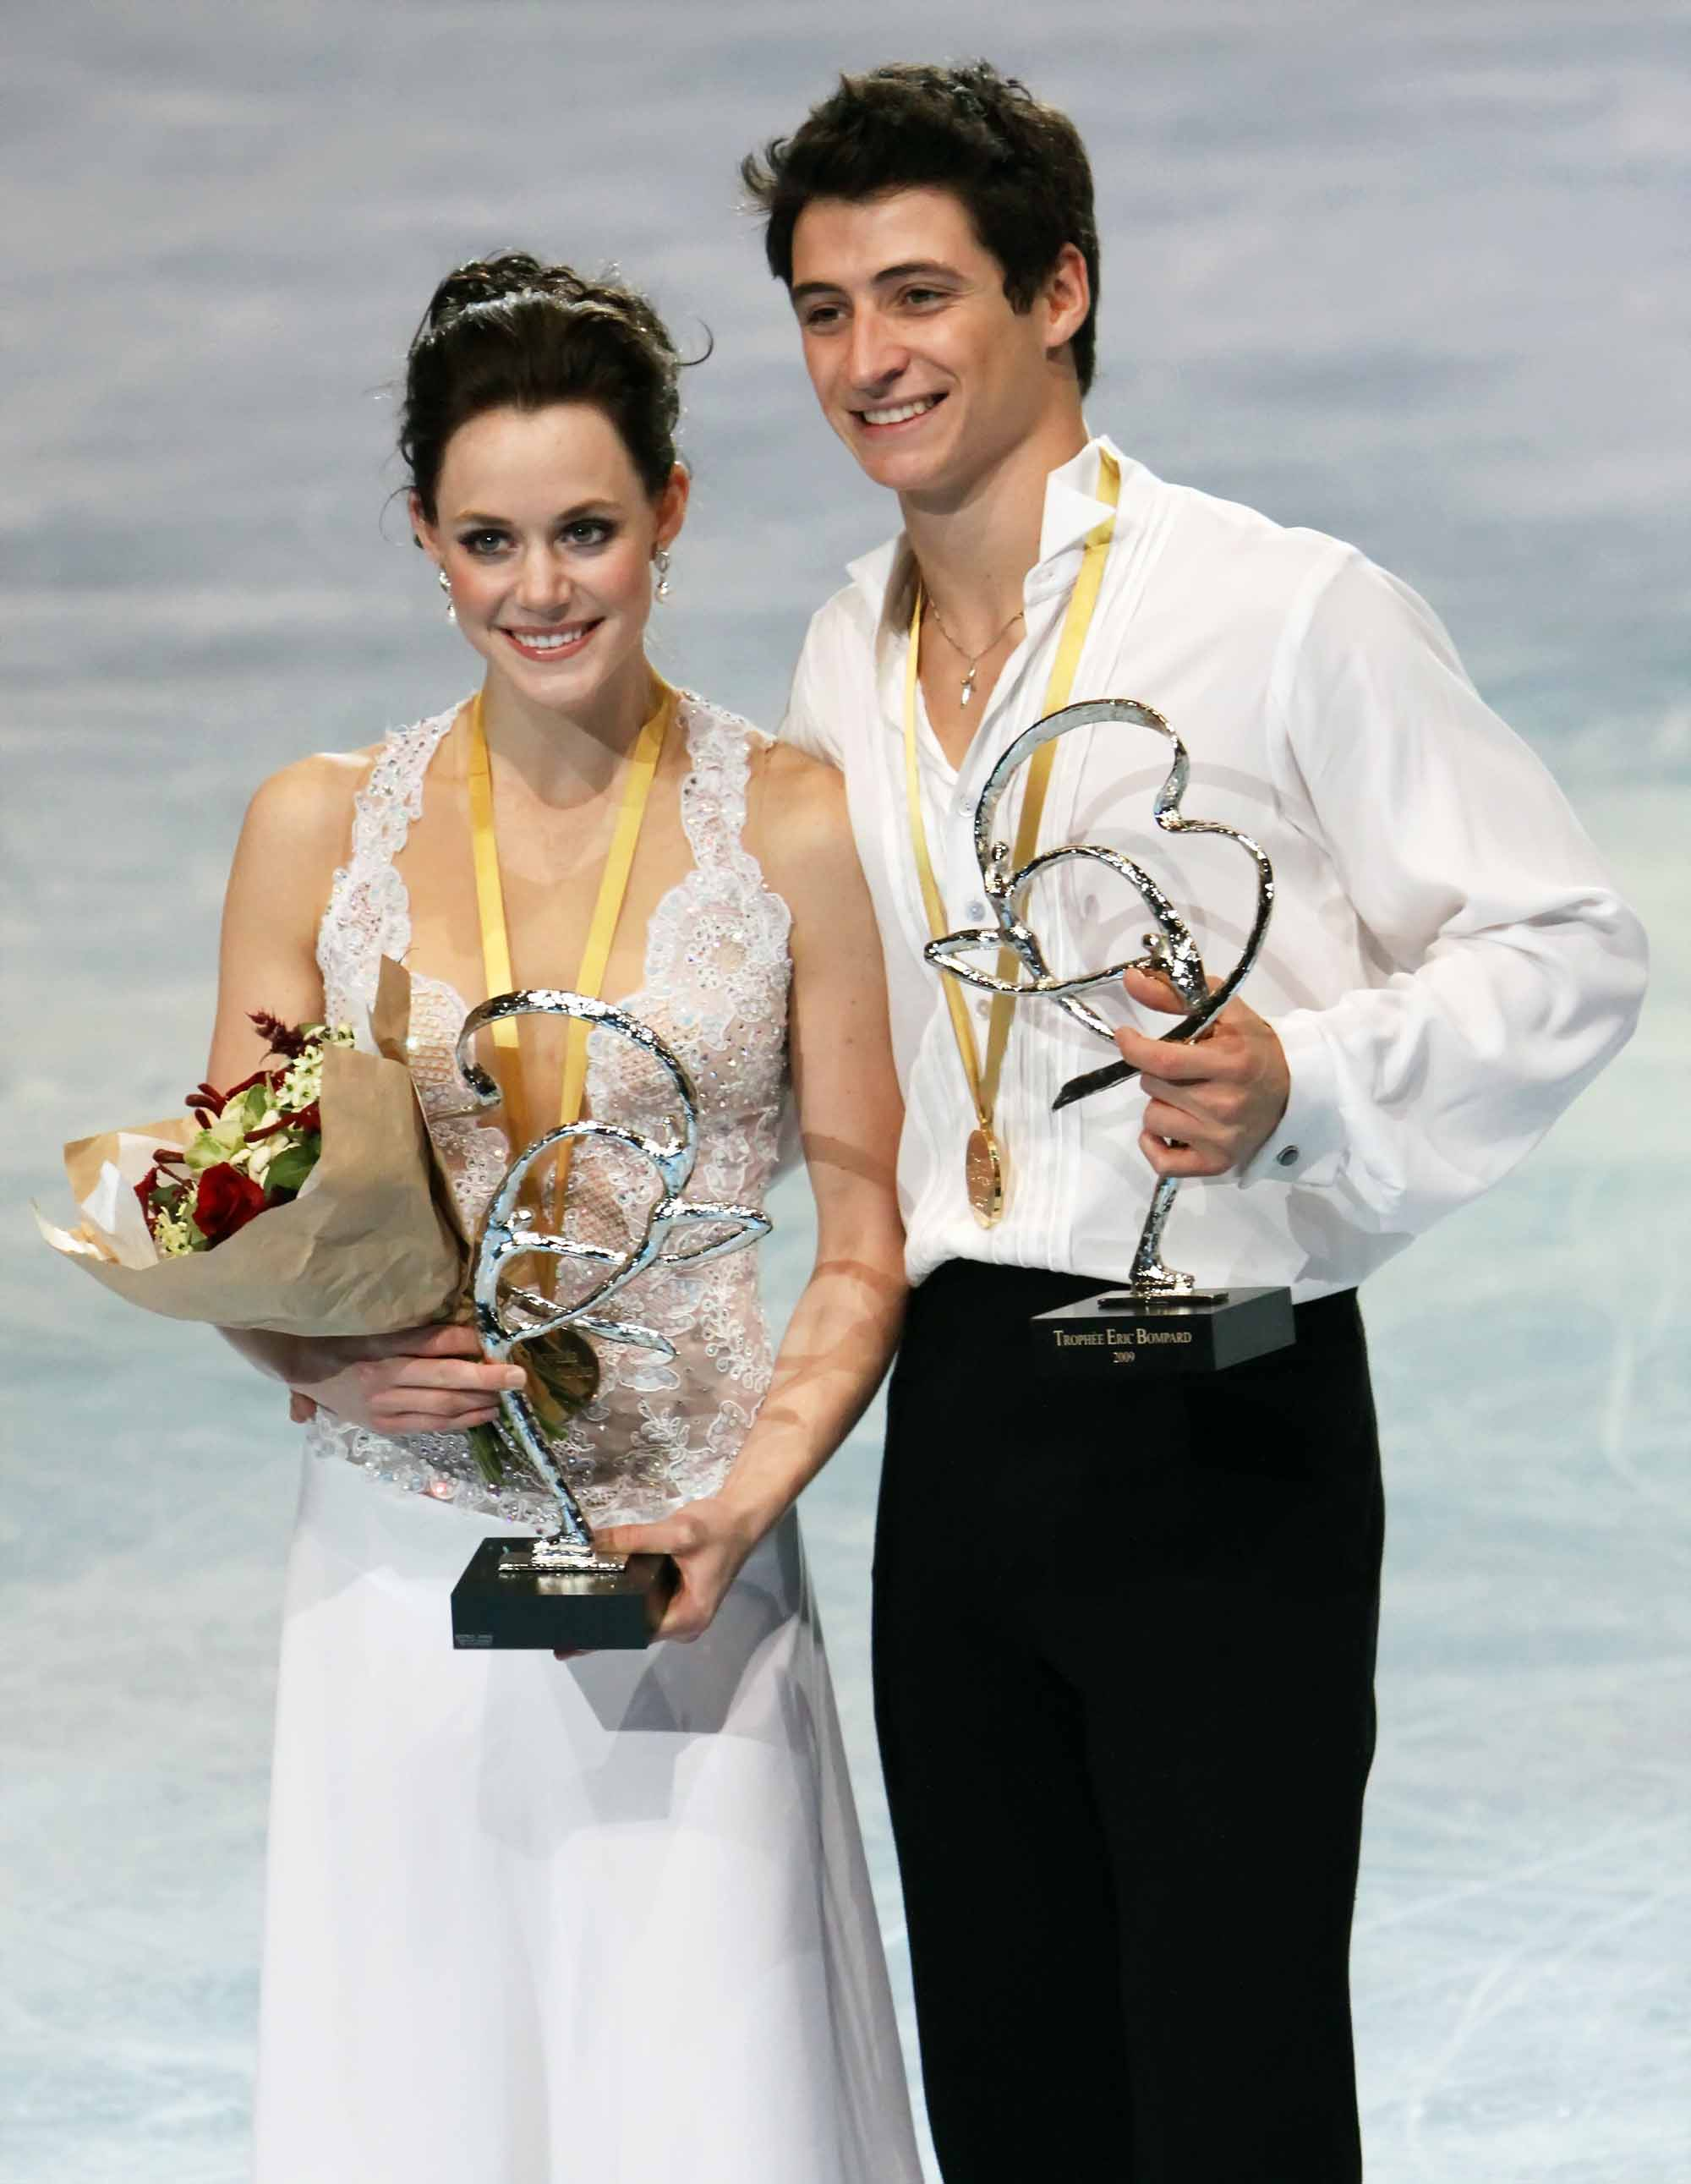 Tessa Virtue and Scott Moir Win Gold